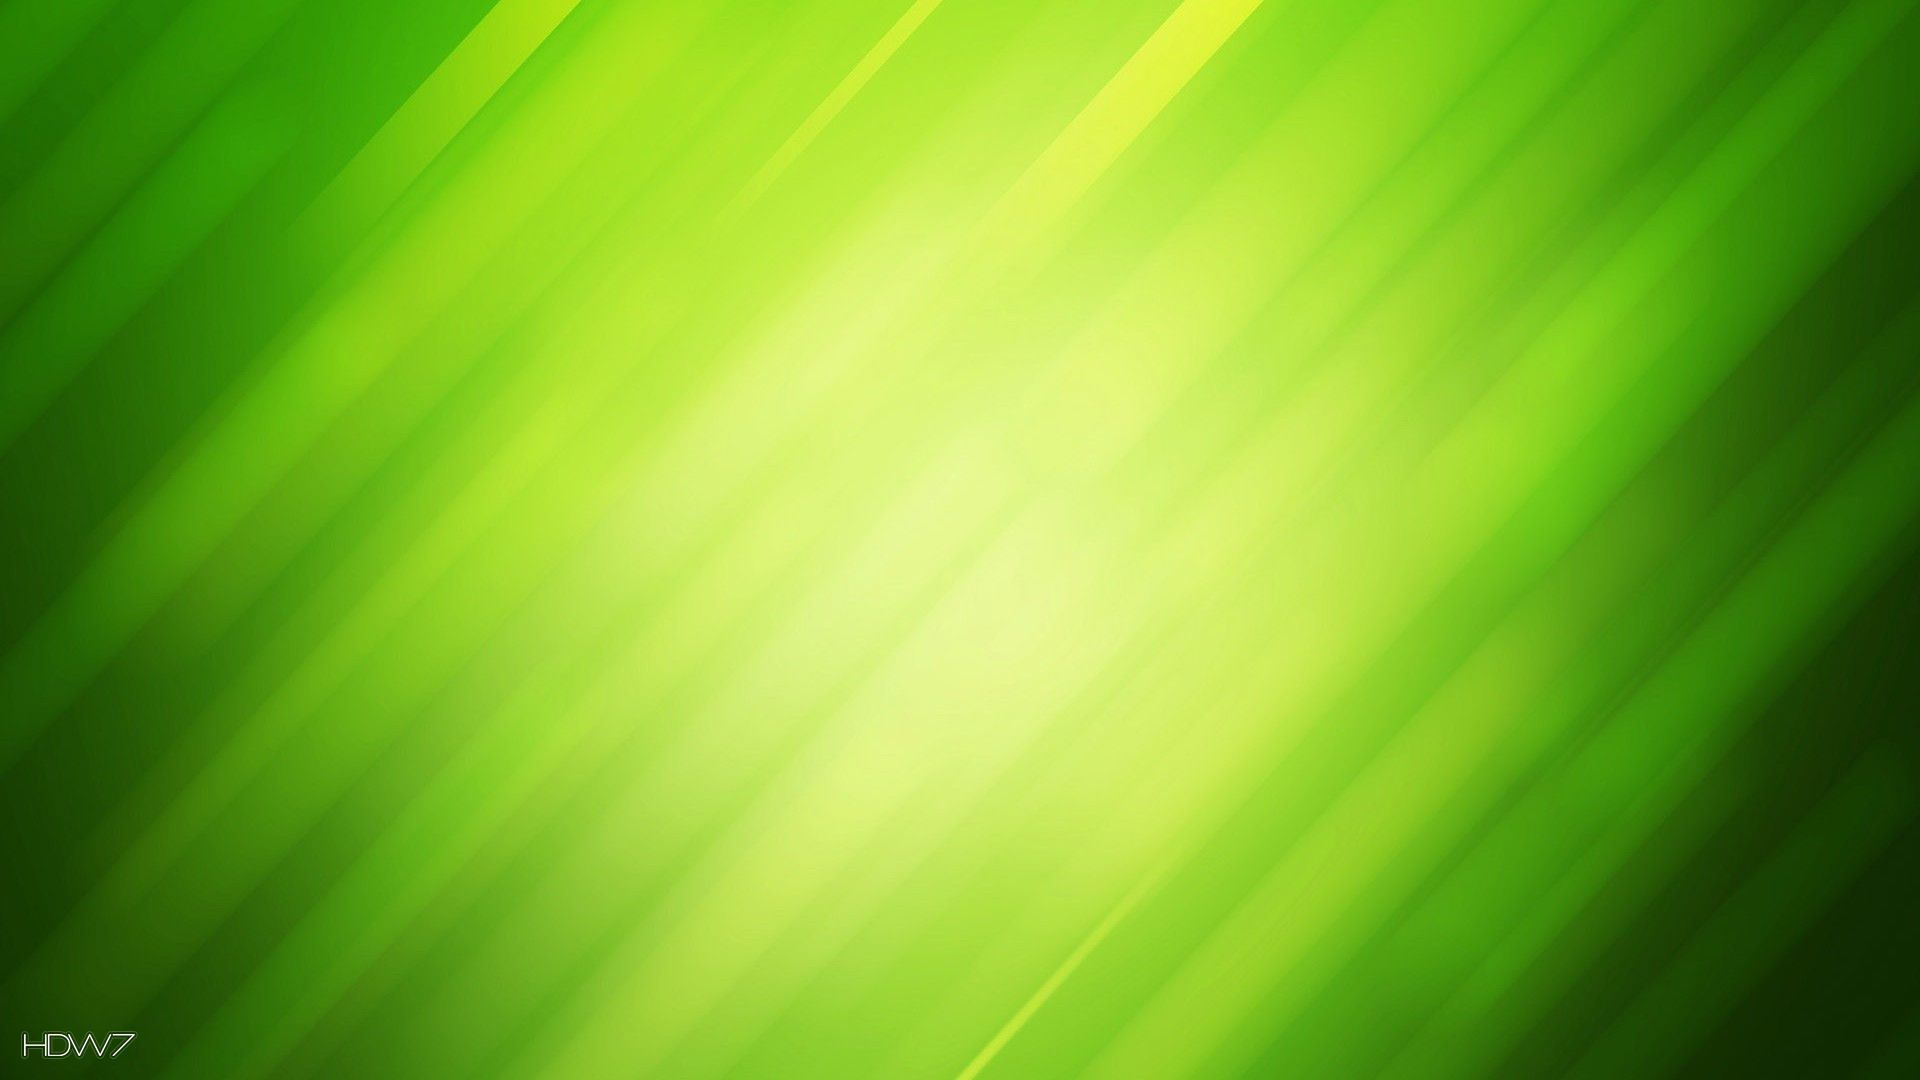 free download hd green wallpapers for windows and mac systems 2400